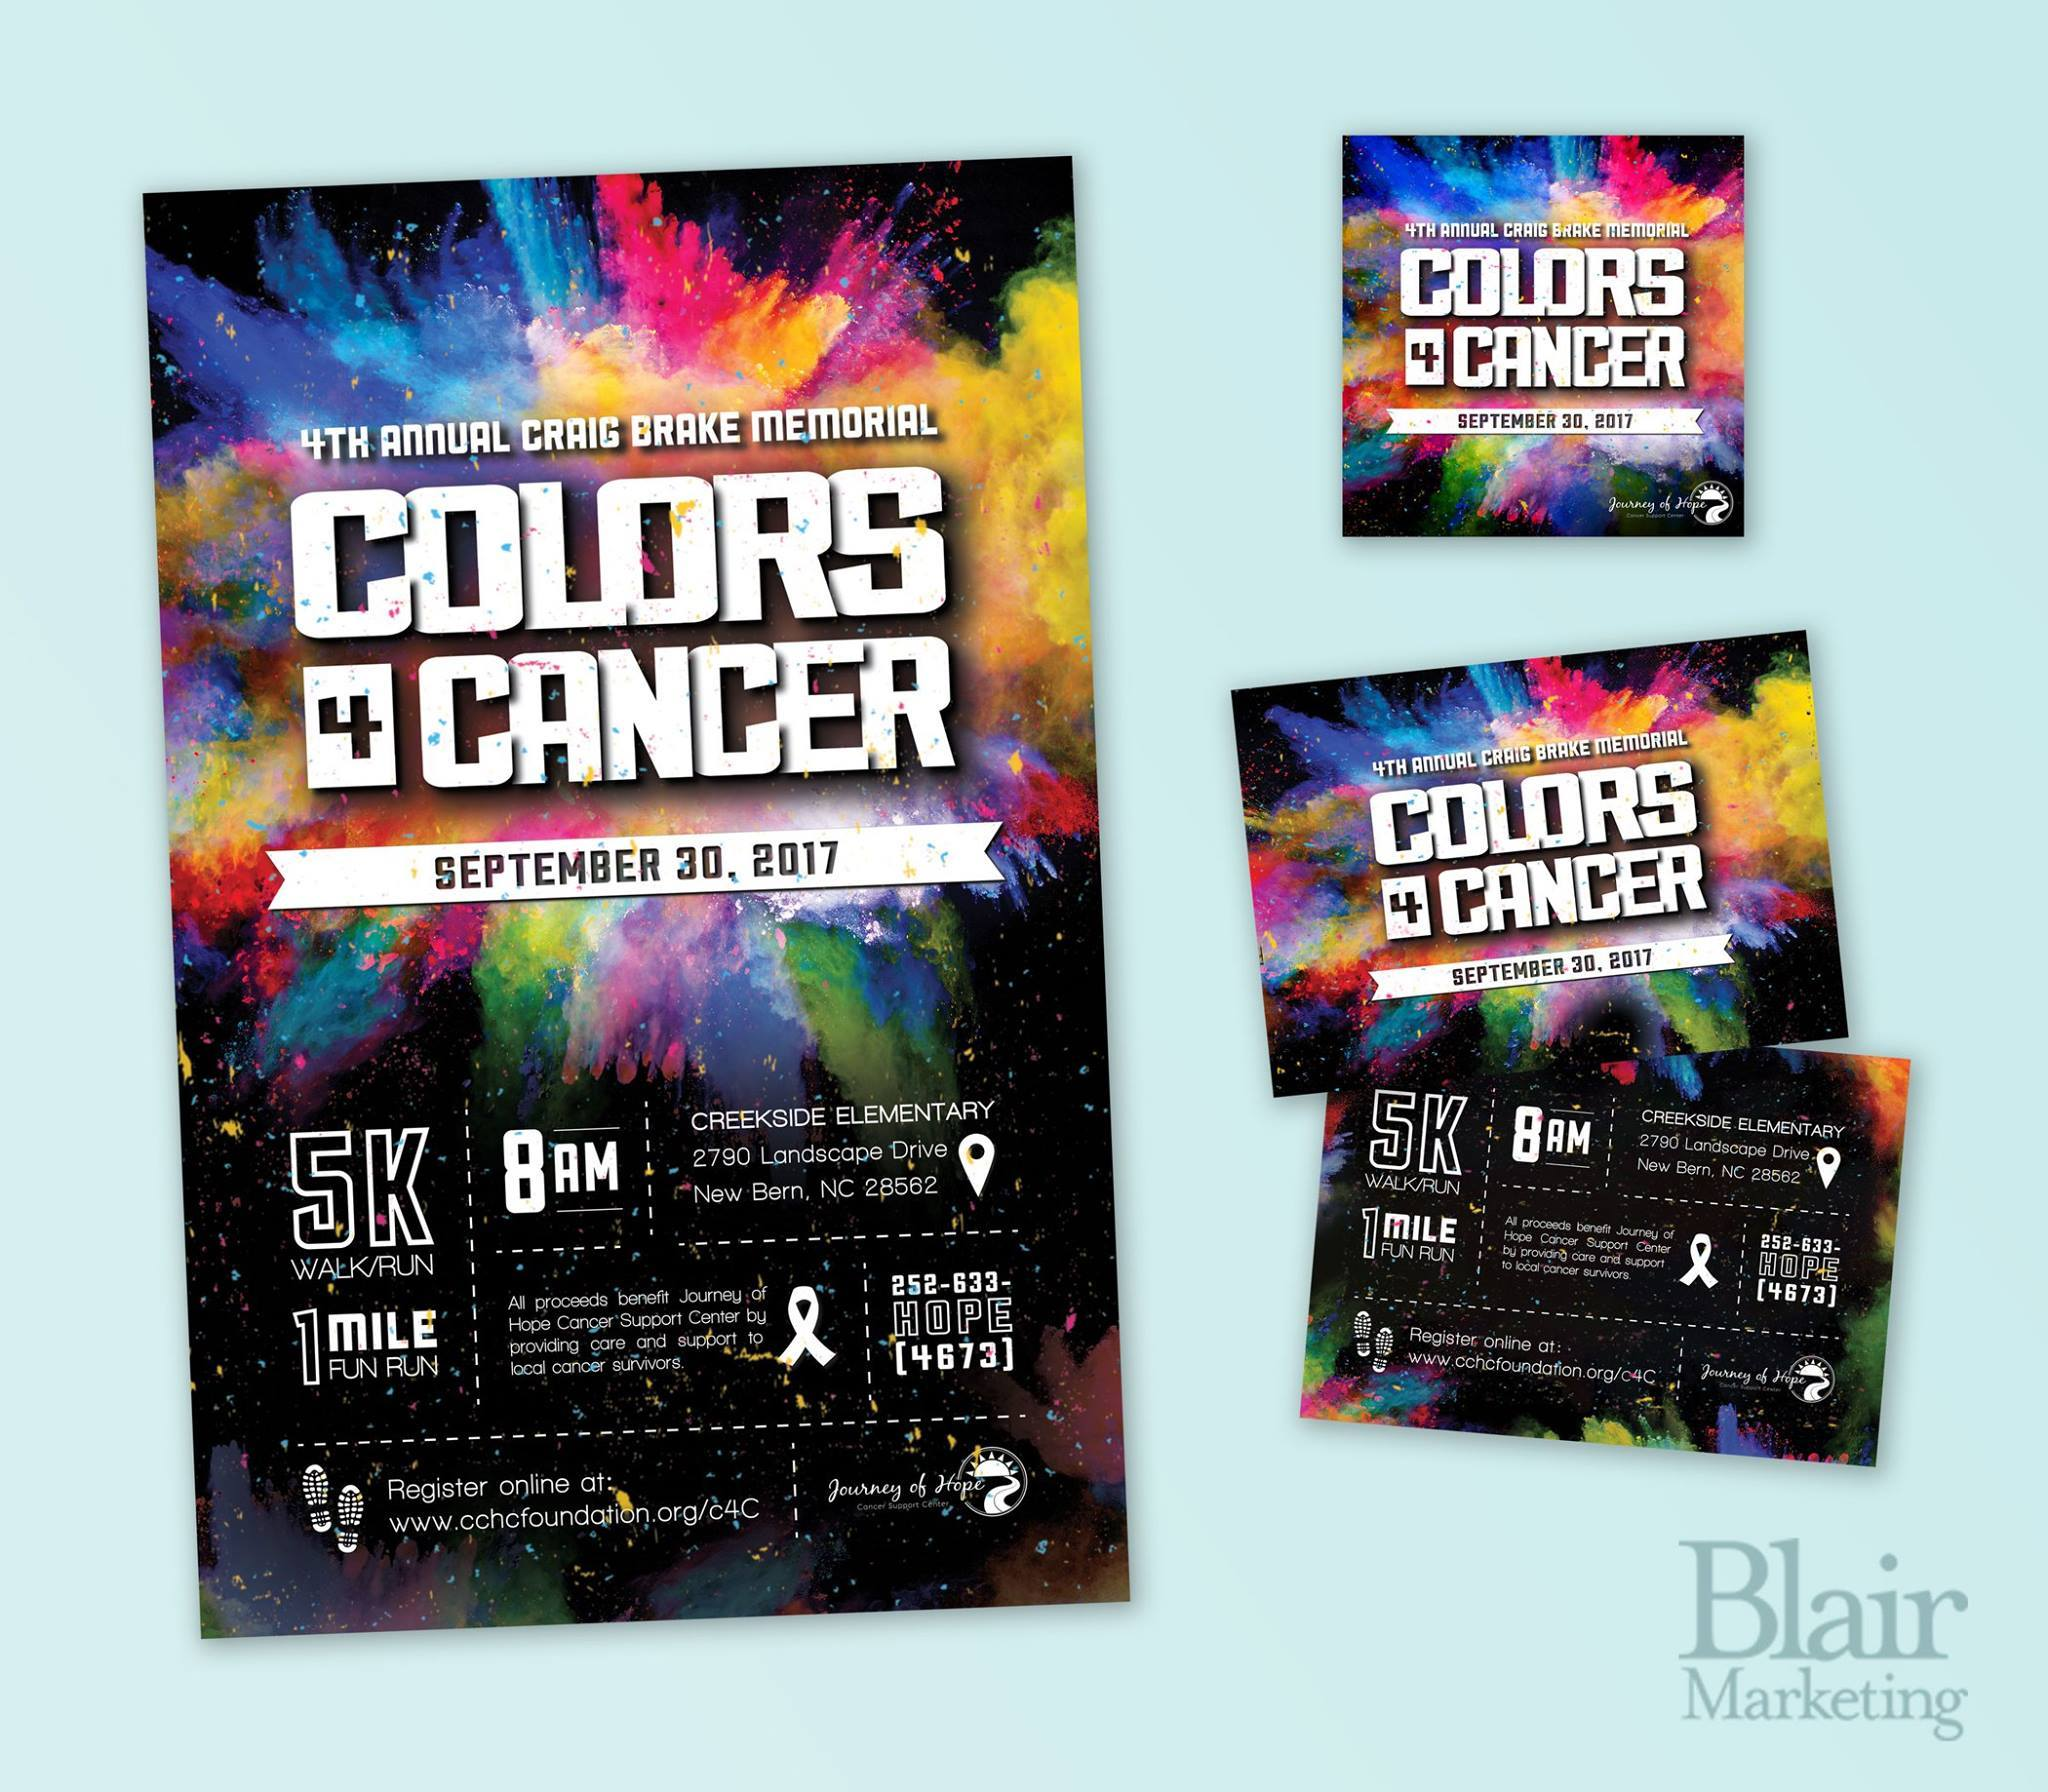 Colors for cancer print materials